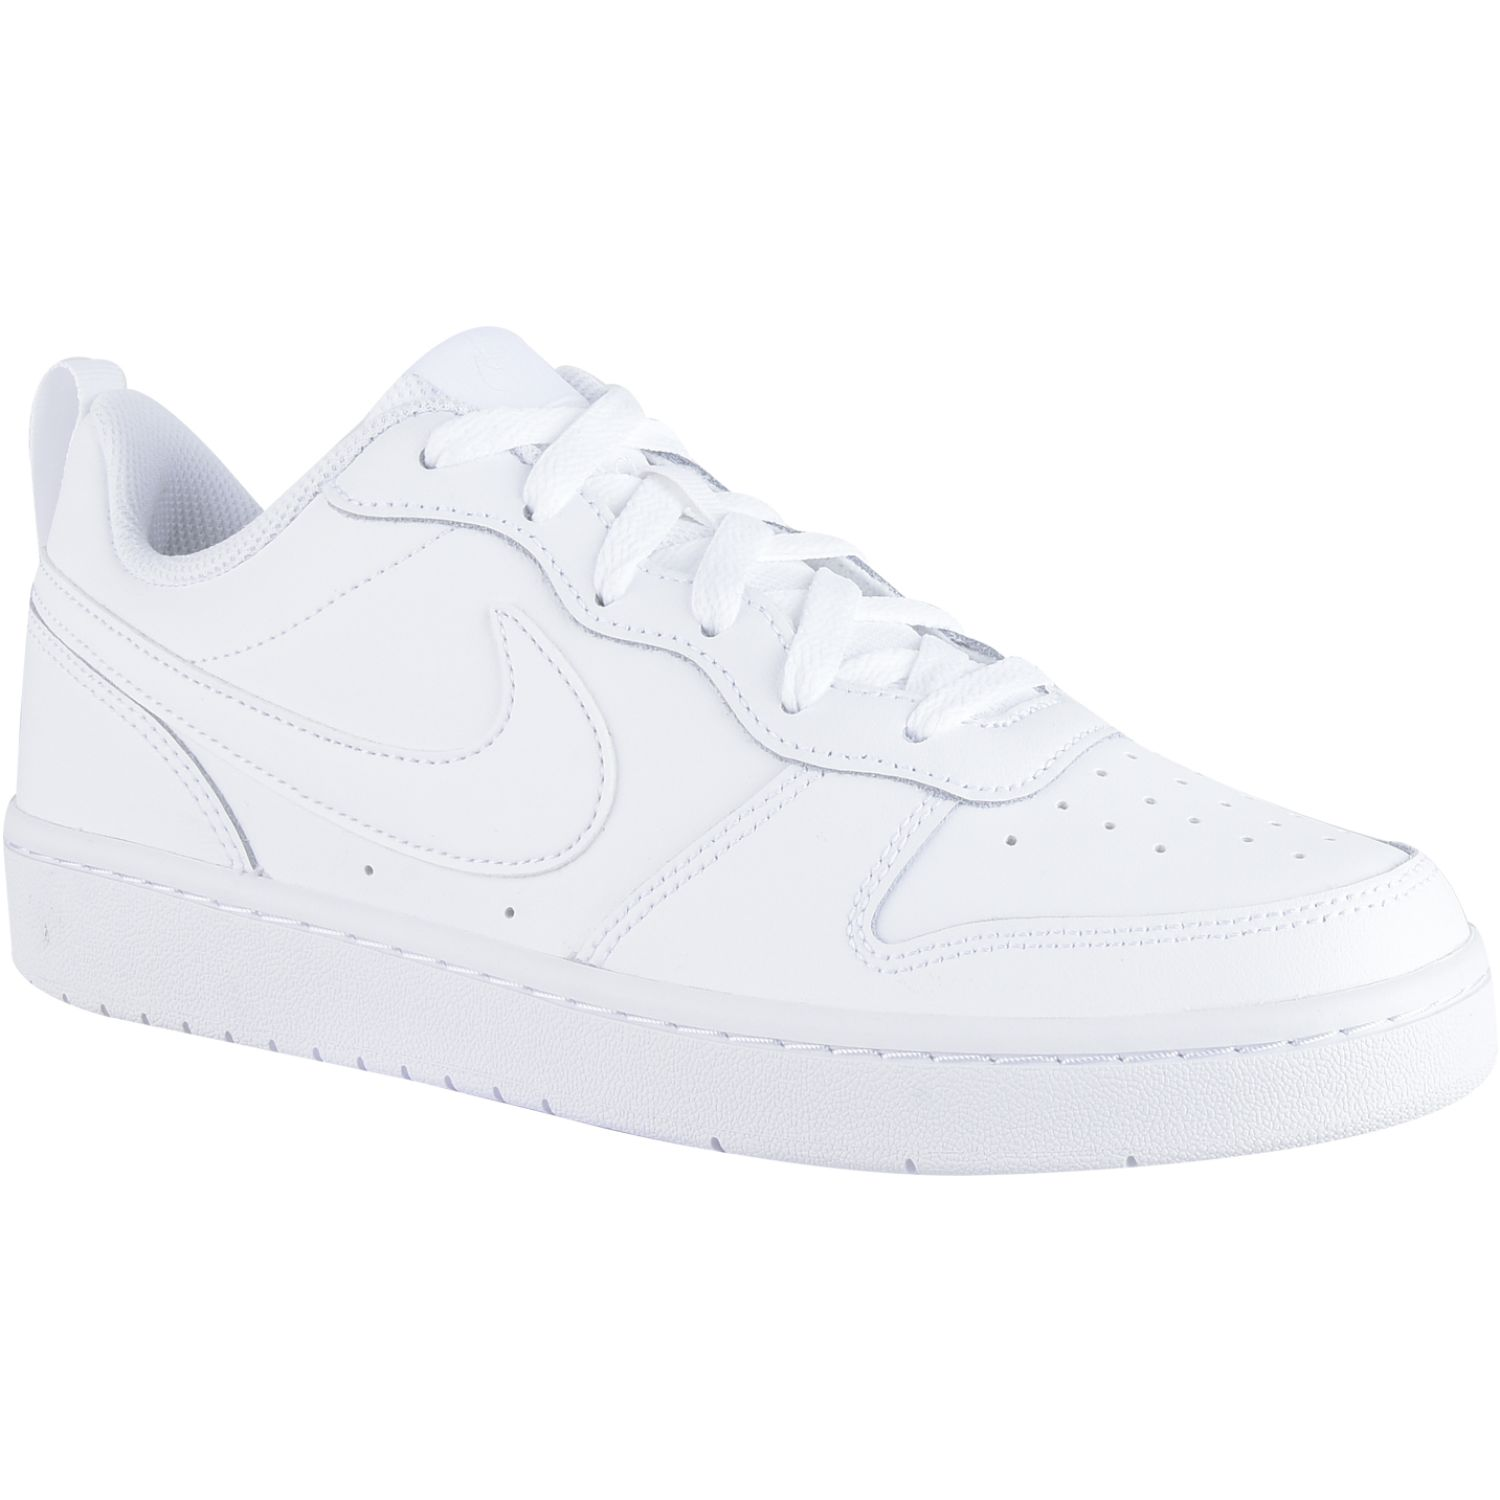 Nike Court Borough Low 2 Bg Blanco Para caminar